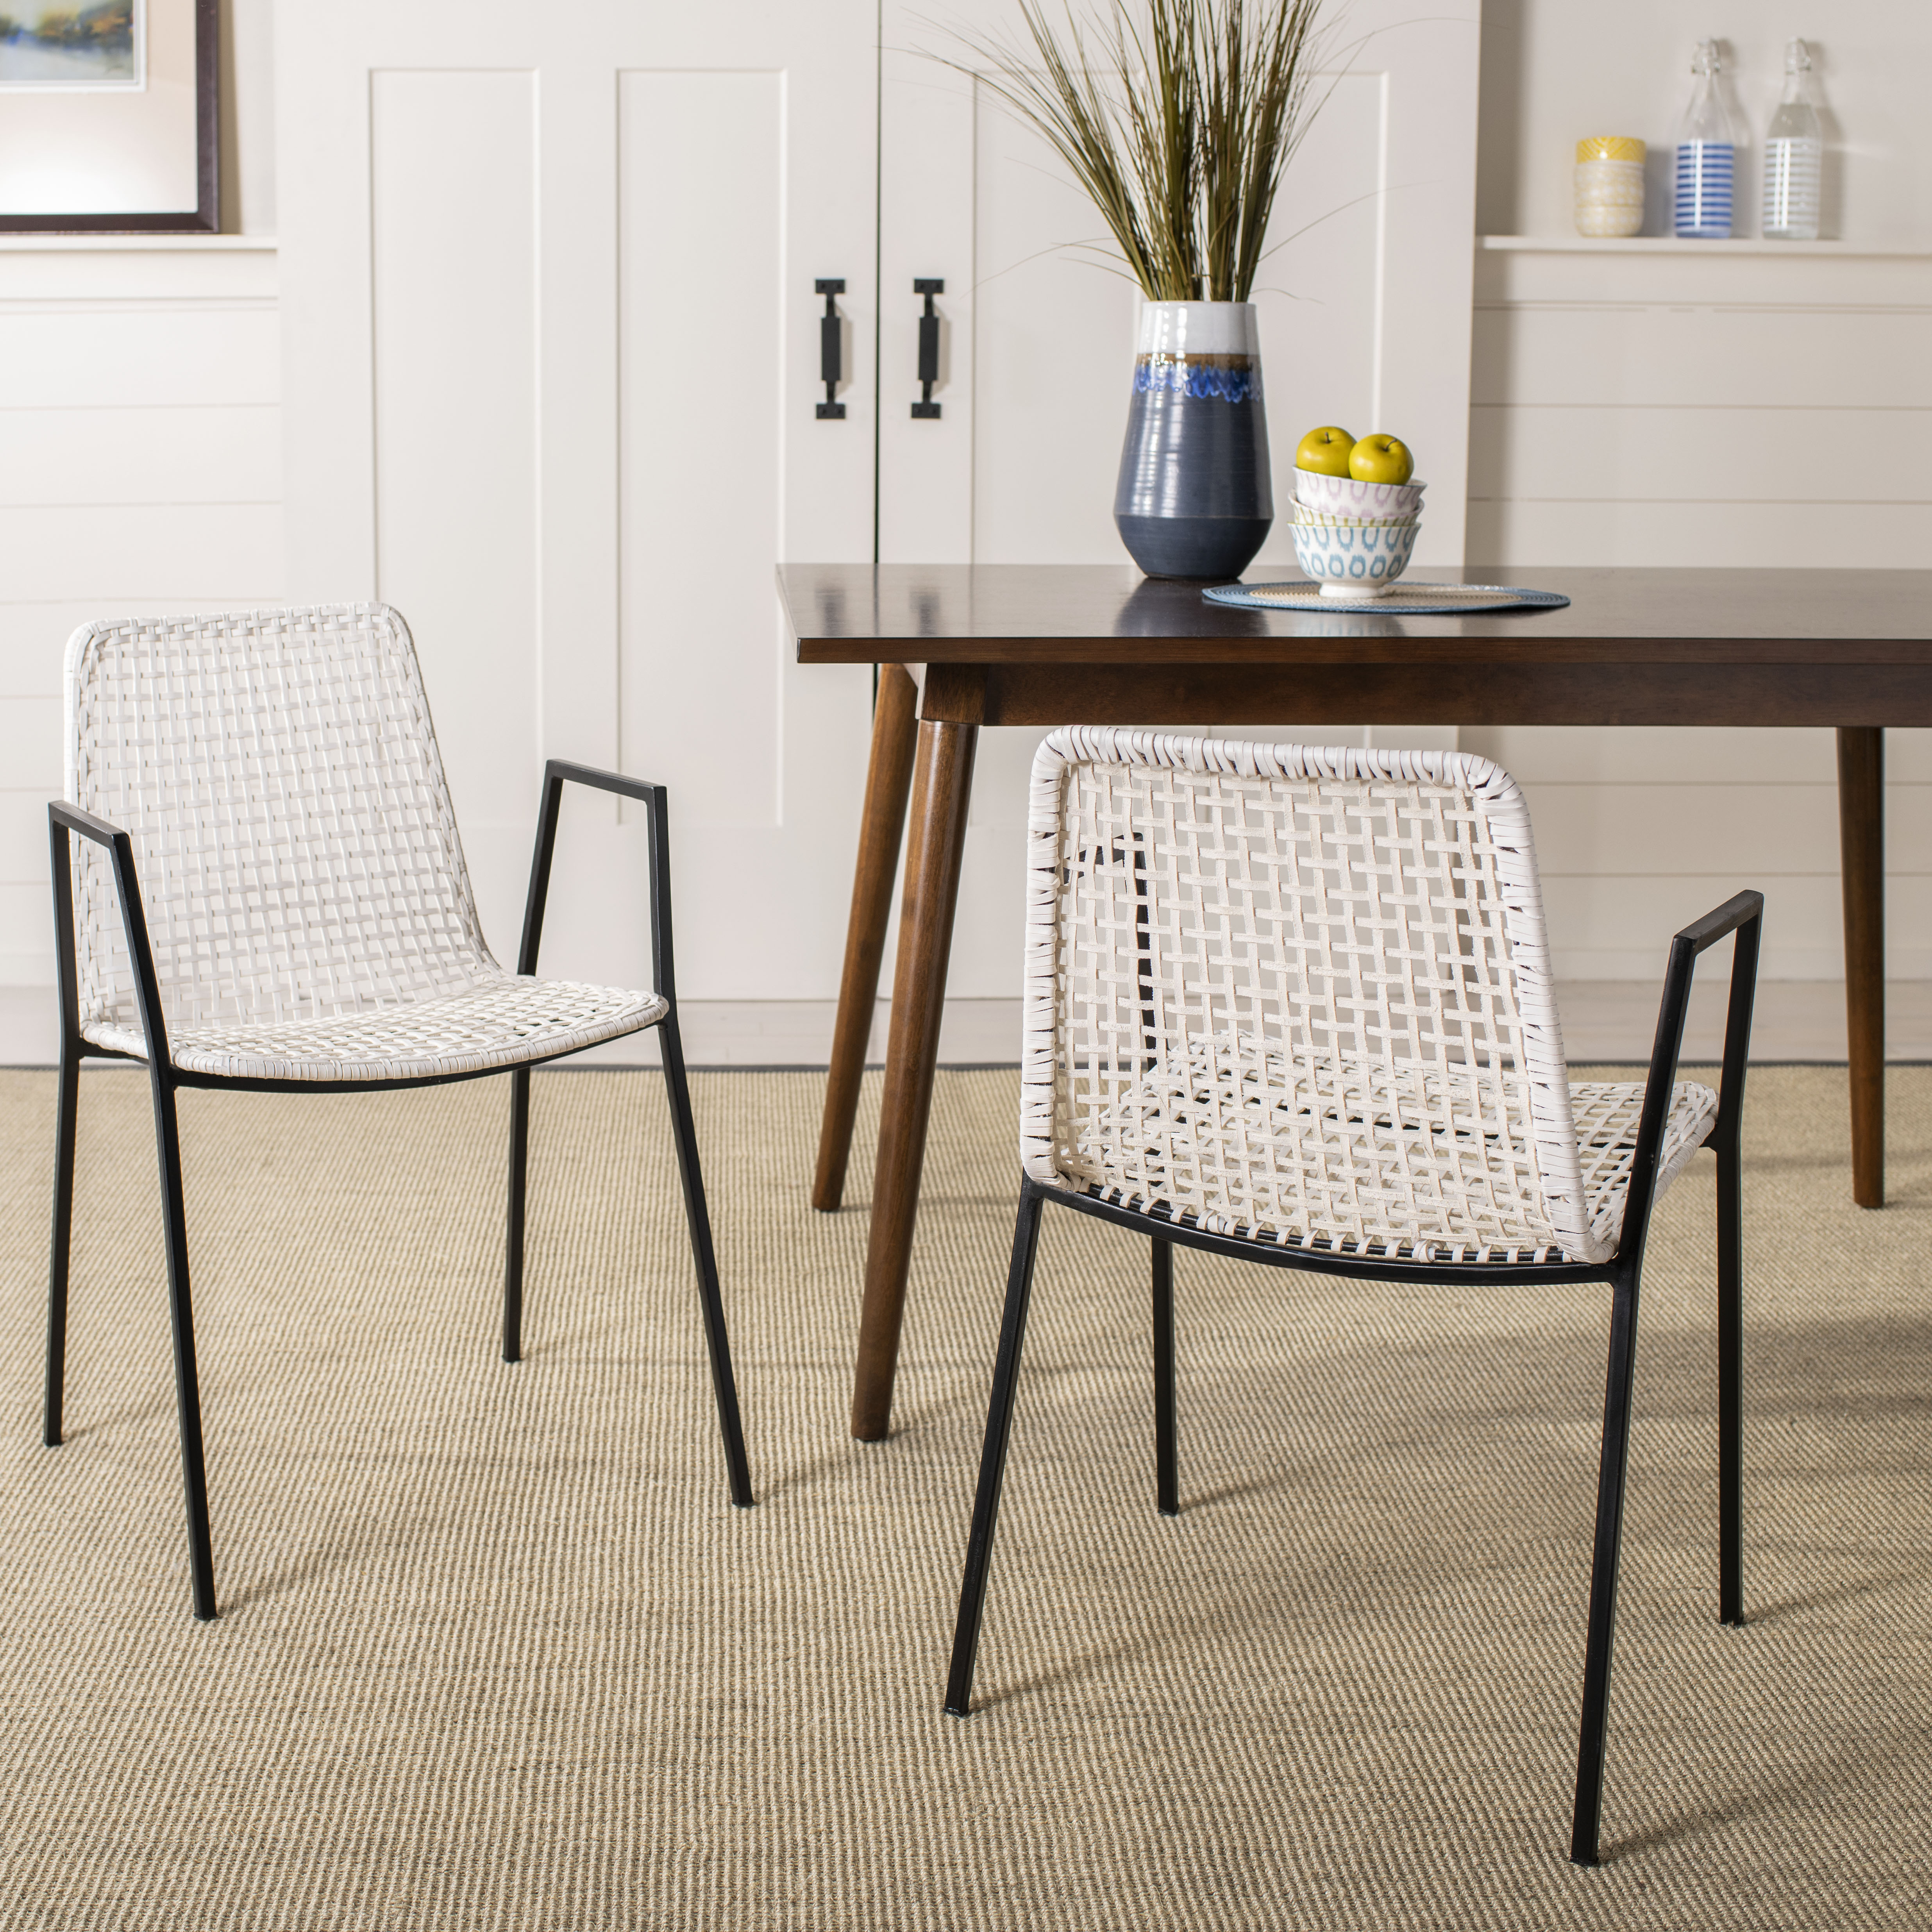 Picture of: Safavieh Wynona Modern Glam Leather Woven Dining Chair Set Of 2 Walmart Com Walmart Com